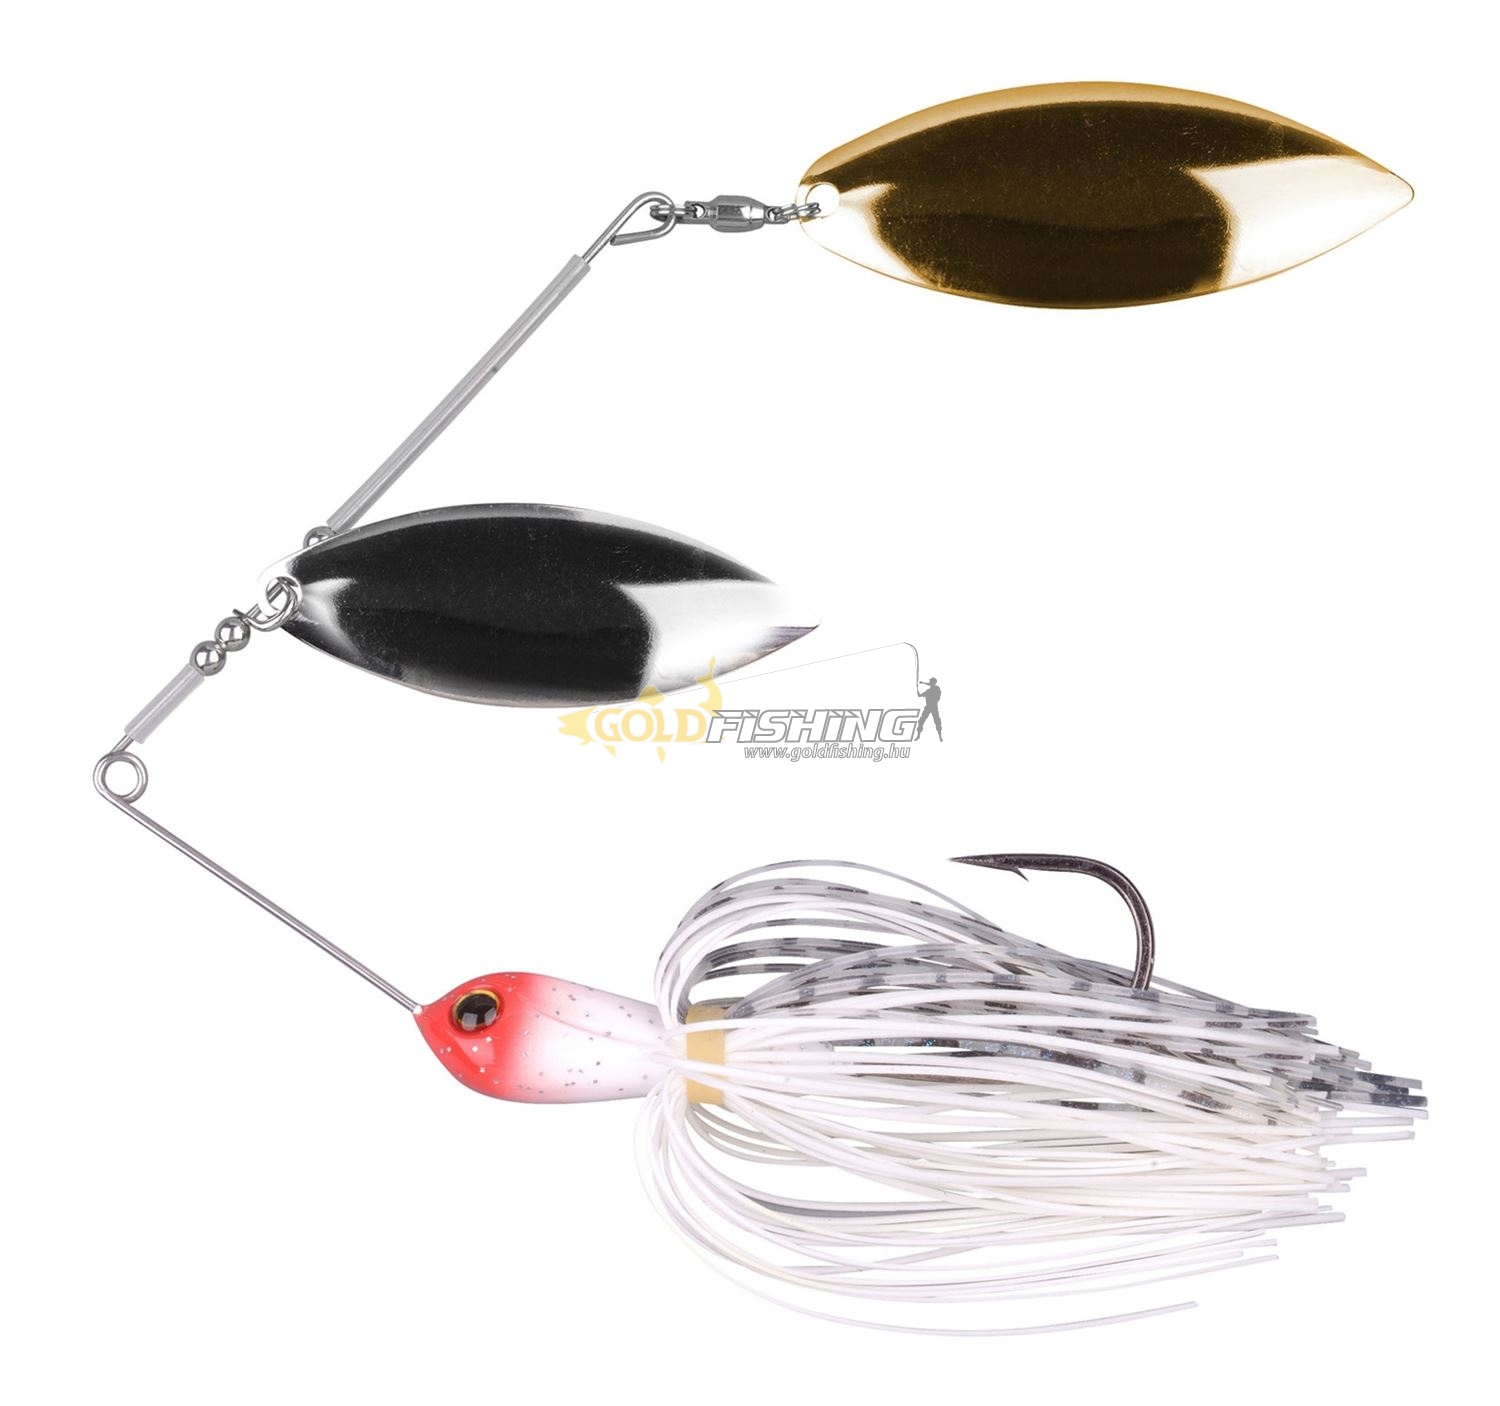 ringed spinnerbait 21 - Red Head